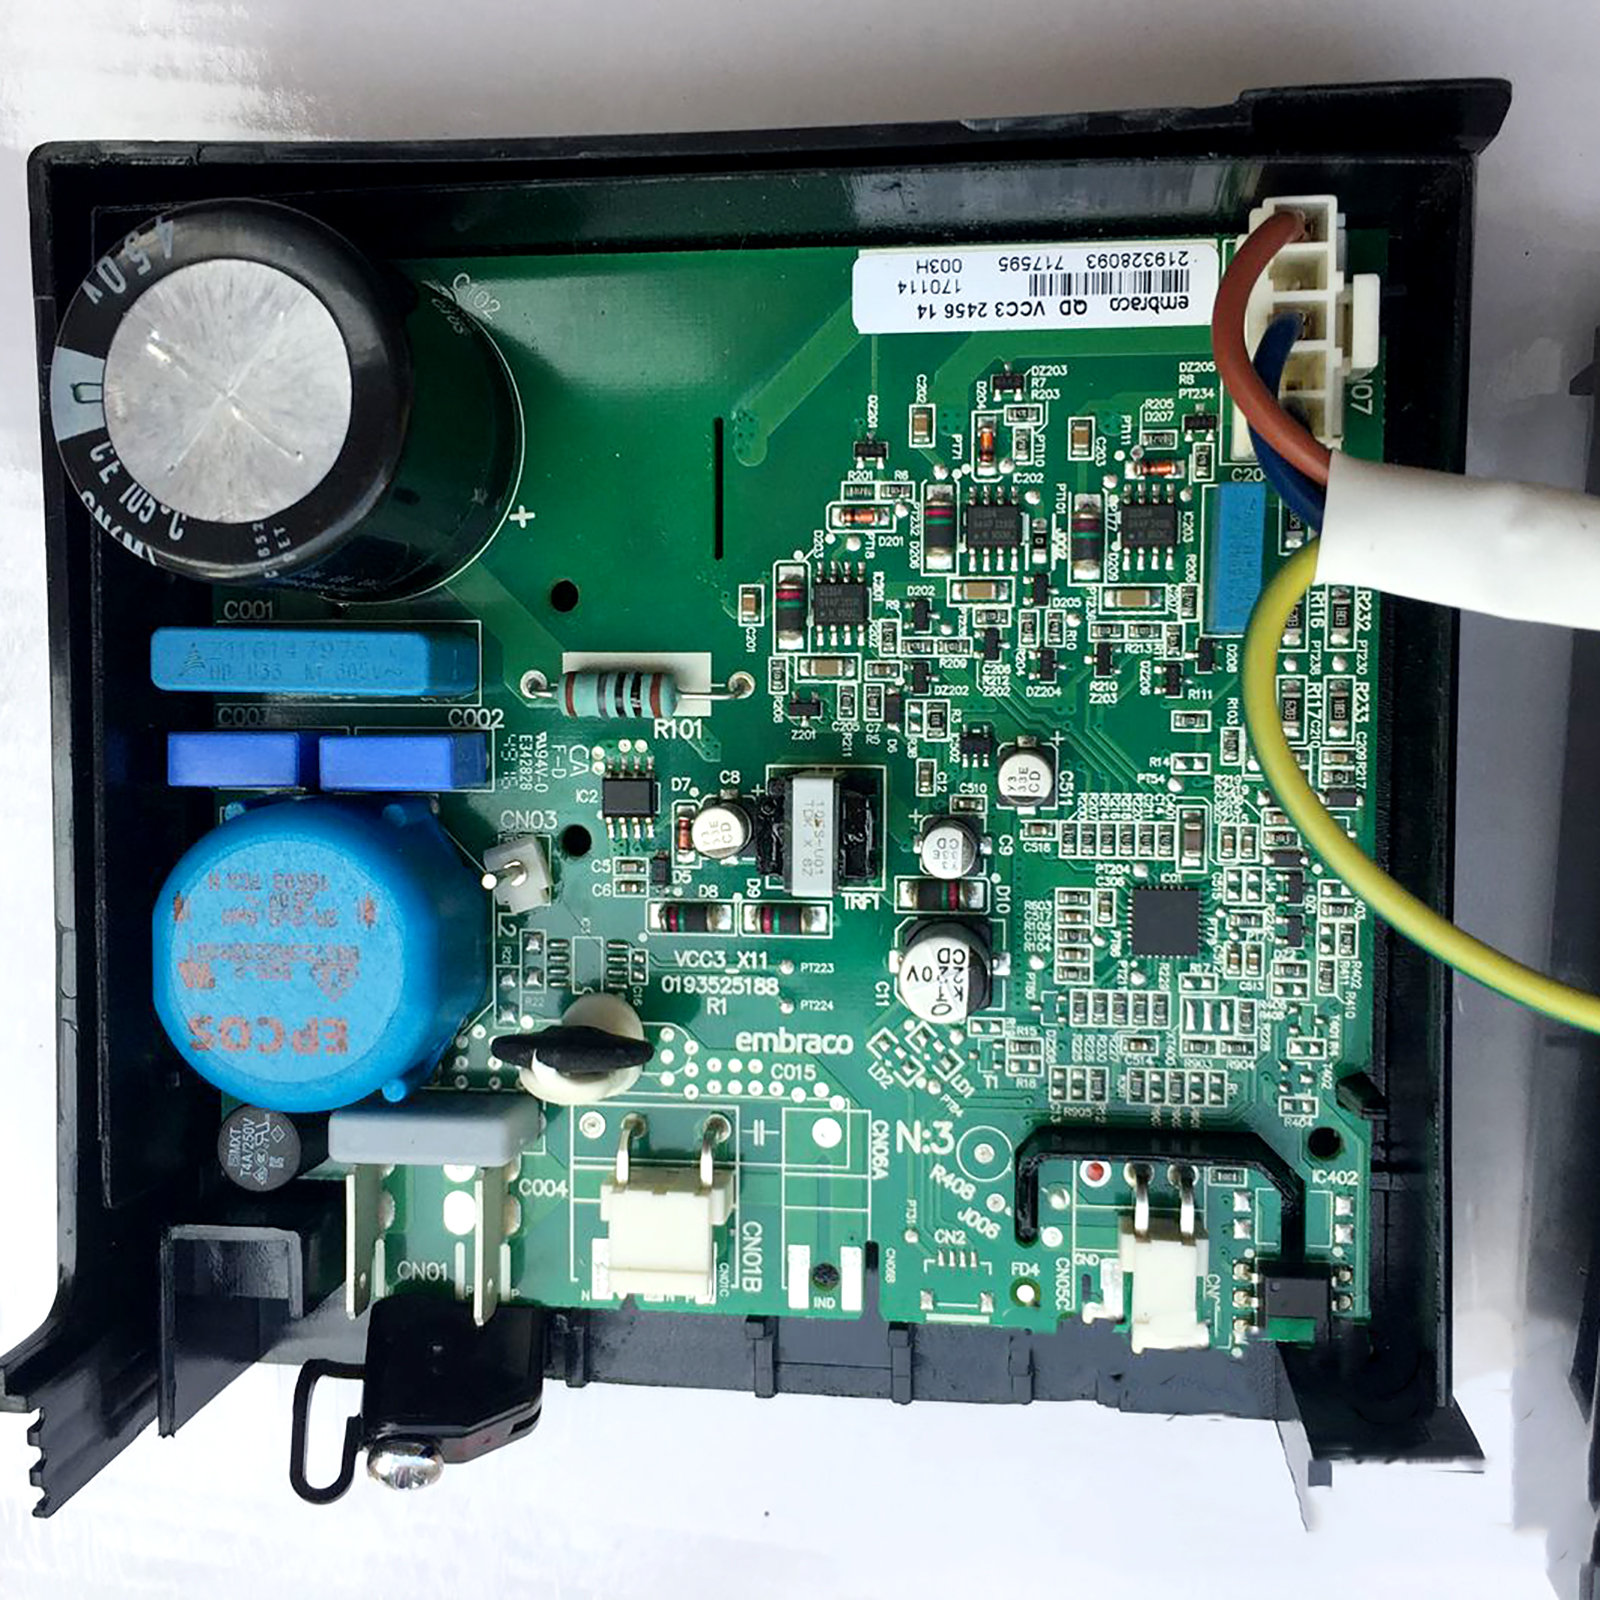 For Hair Meiling Refrigerator Inverter Board Driver Board 0193525188 Embraco QD VCC3 2456 14 F 02 Refrigerator Parts